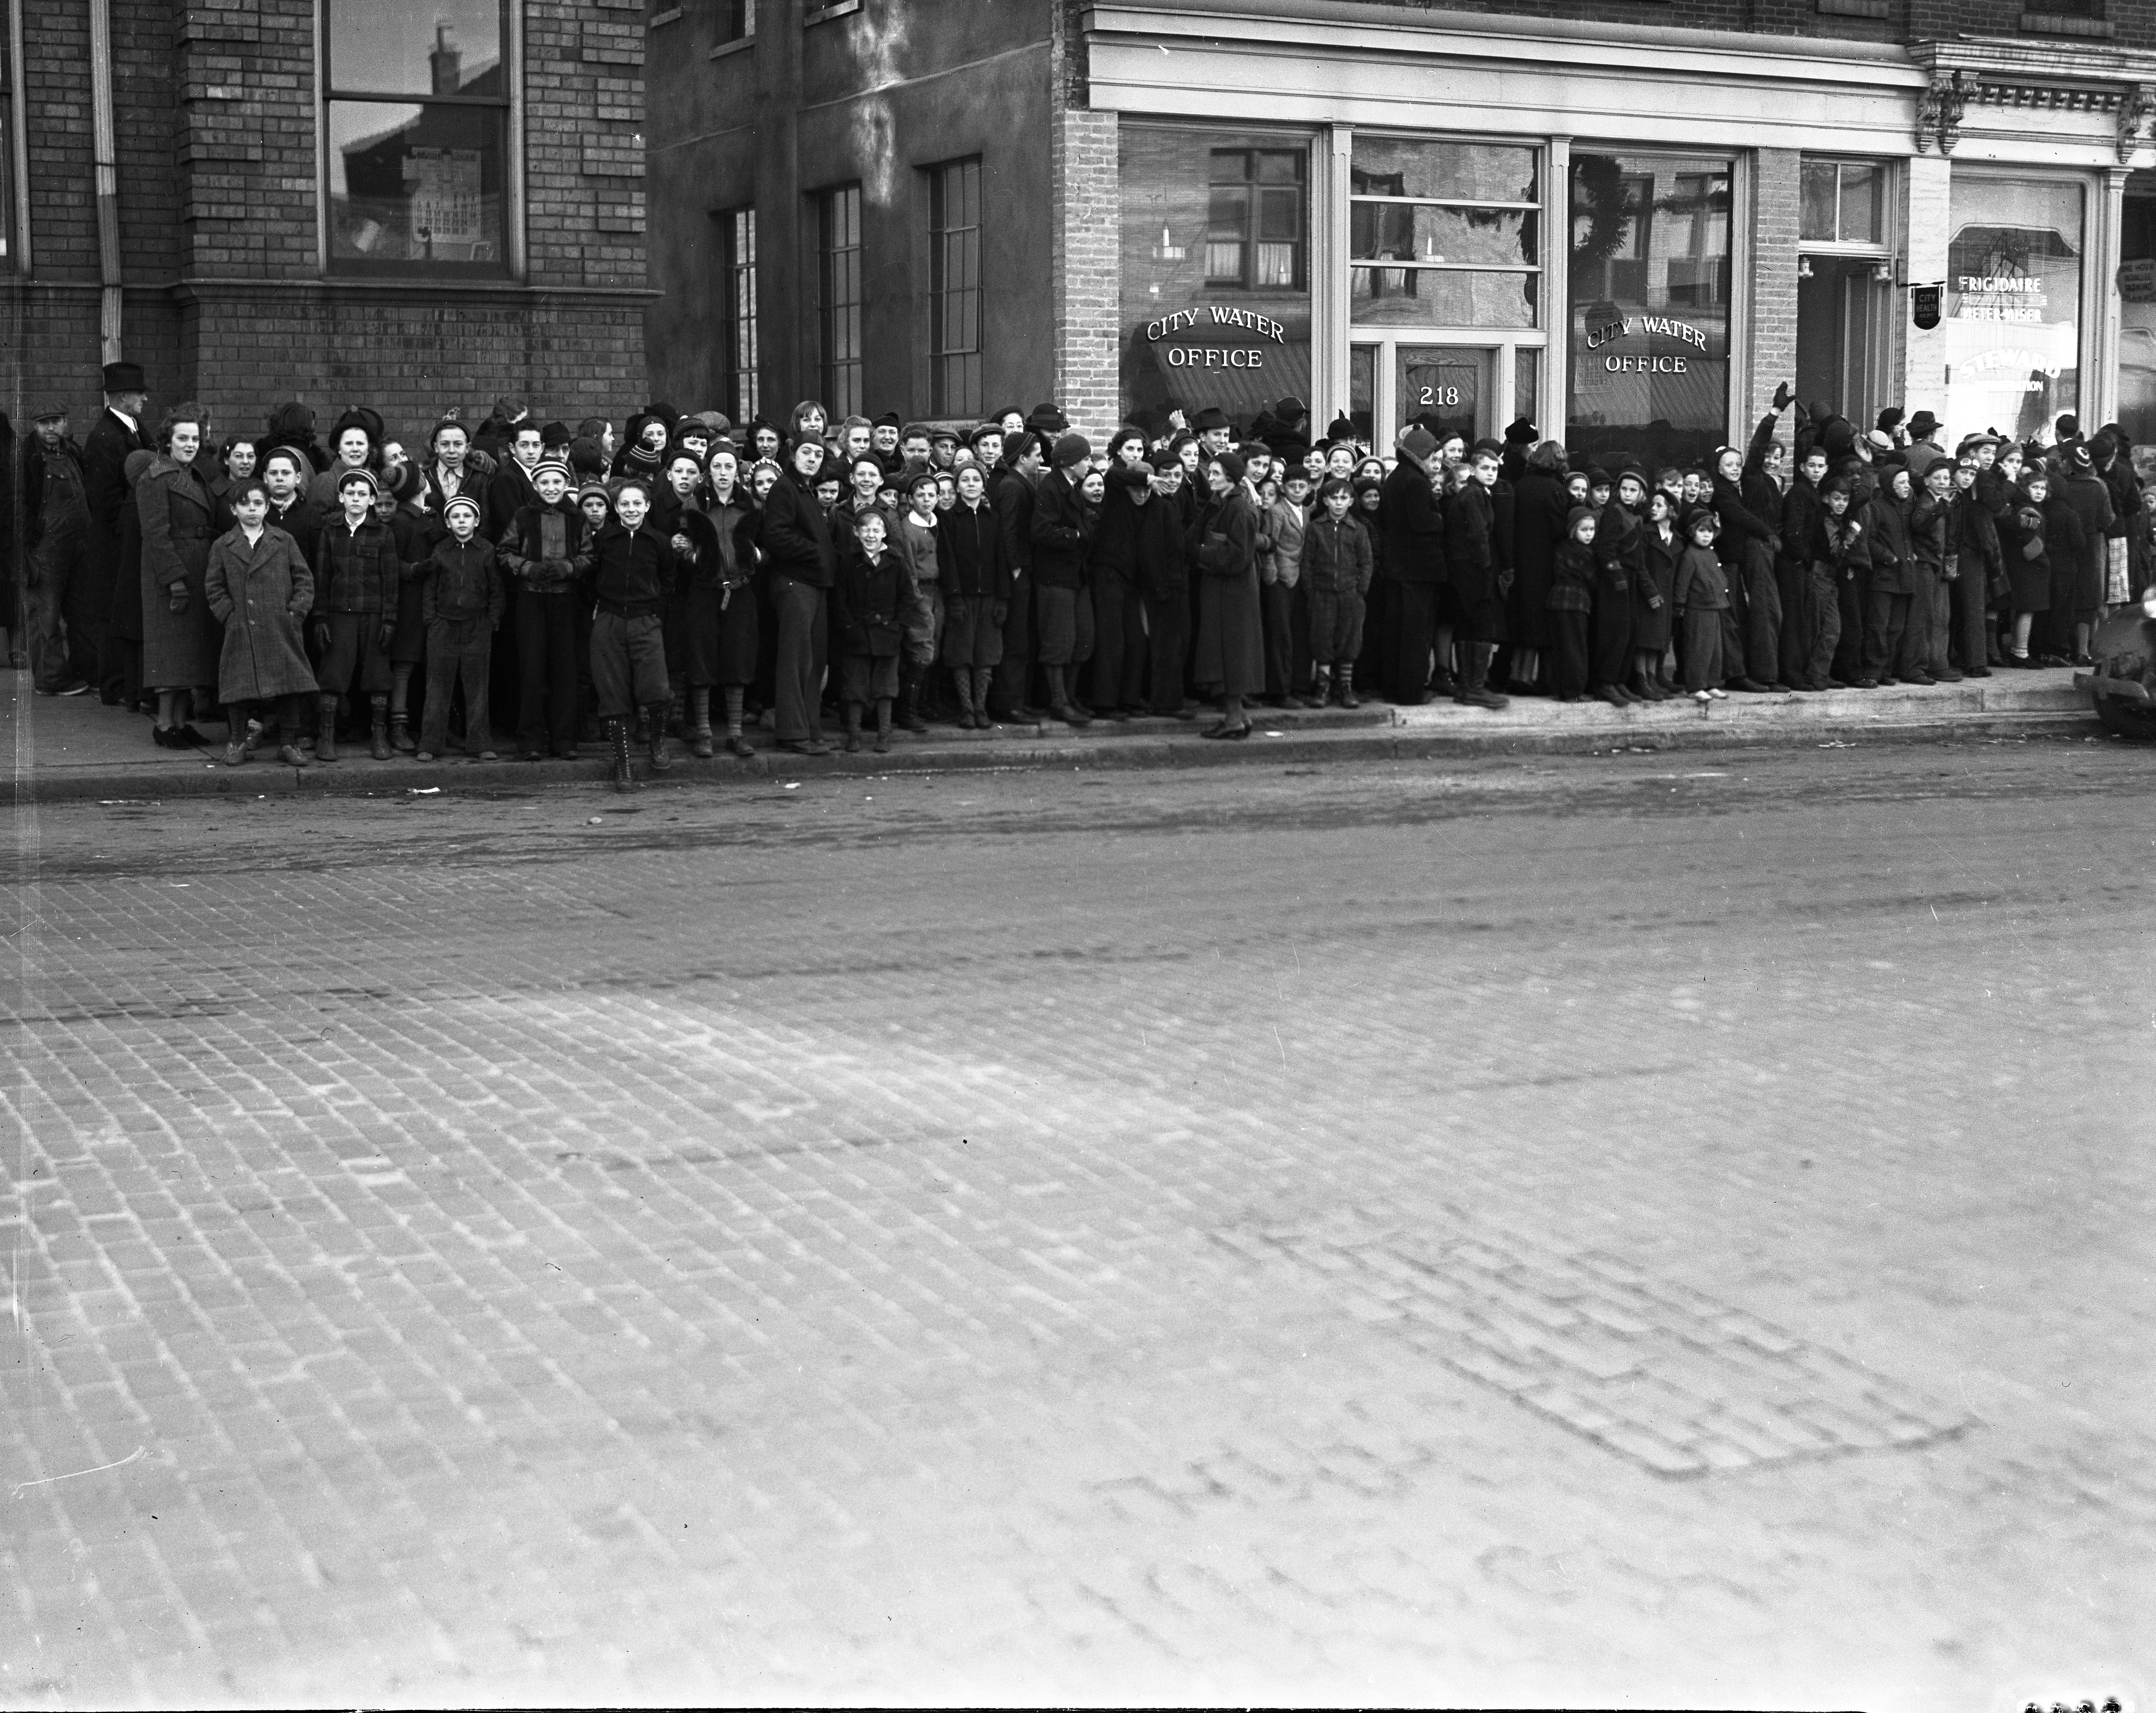 School Children Line Up On E. Huron Street For Tuberculosis Screening at Public Health Office, December 1937 image